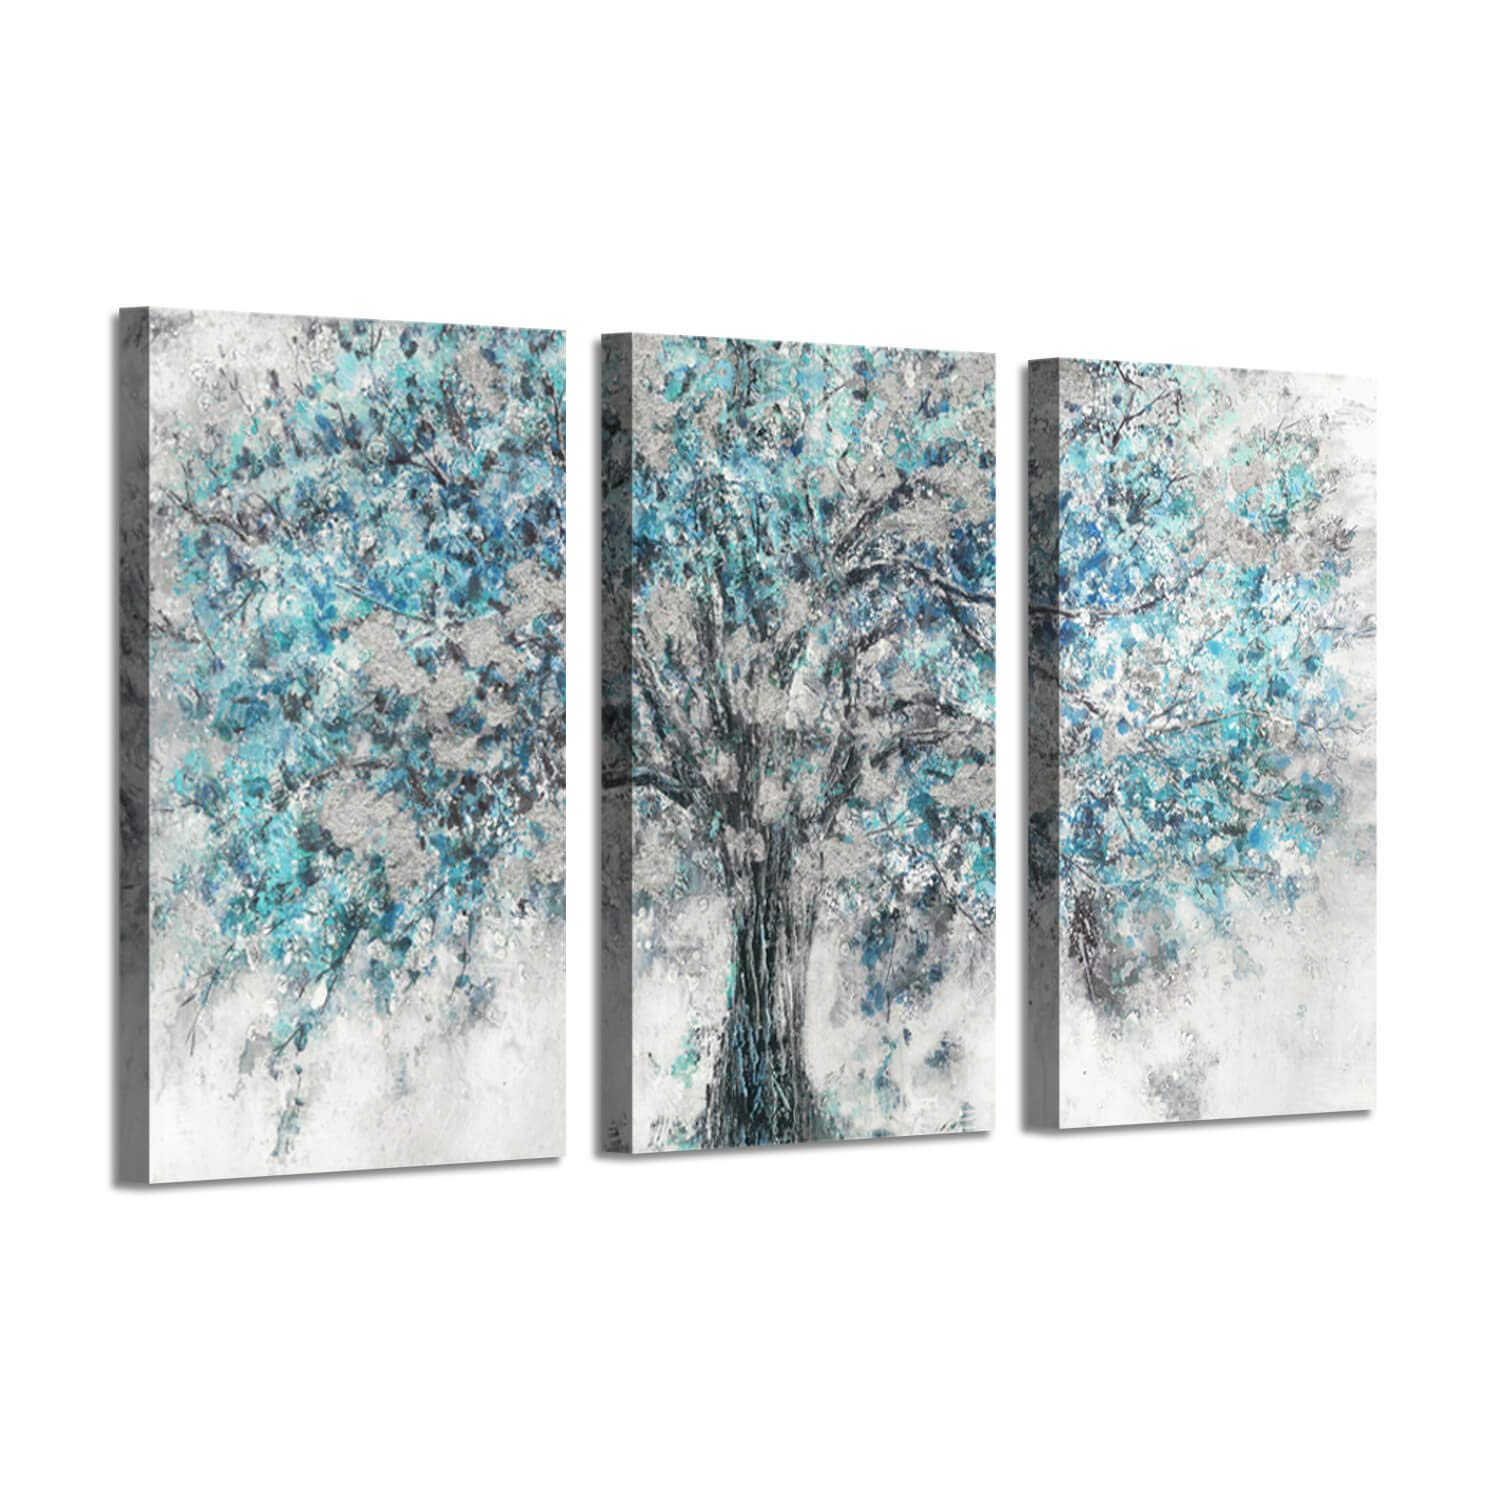 Abstract Artwork Landscape Wall Art: Blooming Lonely Beautiful Autumn Tree Prints on Wrapped Canvas Set for Home Decor